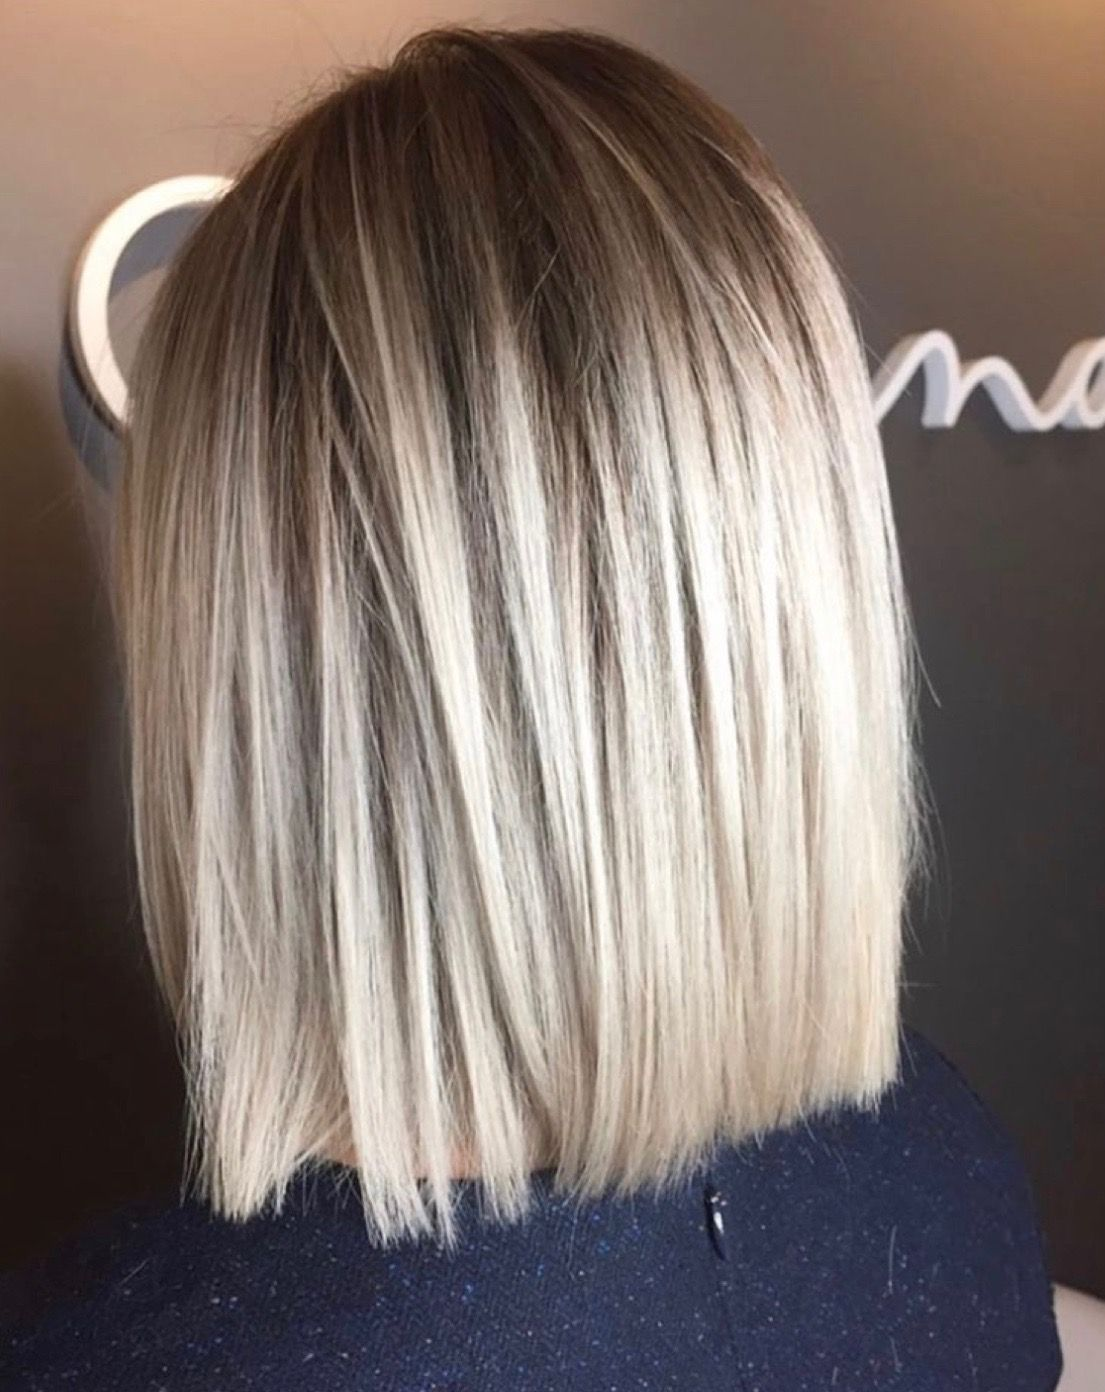 Love This Blunt One Length For The Perfect Most Flattering Short Haircut This Balayage Is Stunning Balayage Straight Hair Hair Styles Hair Lengths